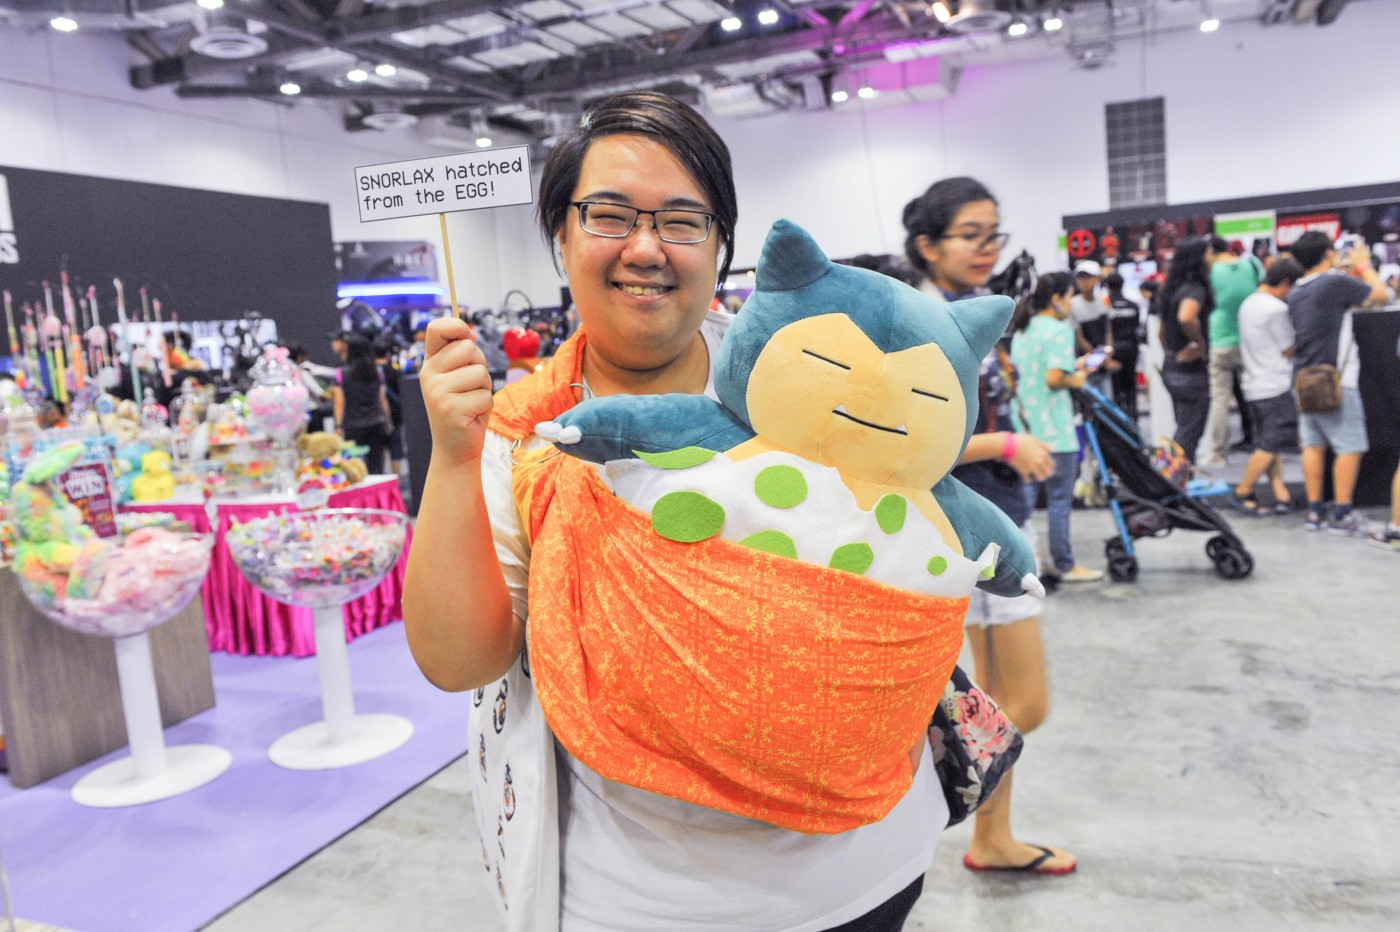 stgcc-2016-cosplay-day-2-singapore-toy-game-comic-convention-1